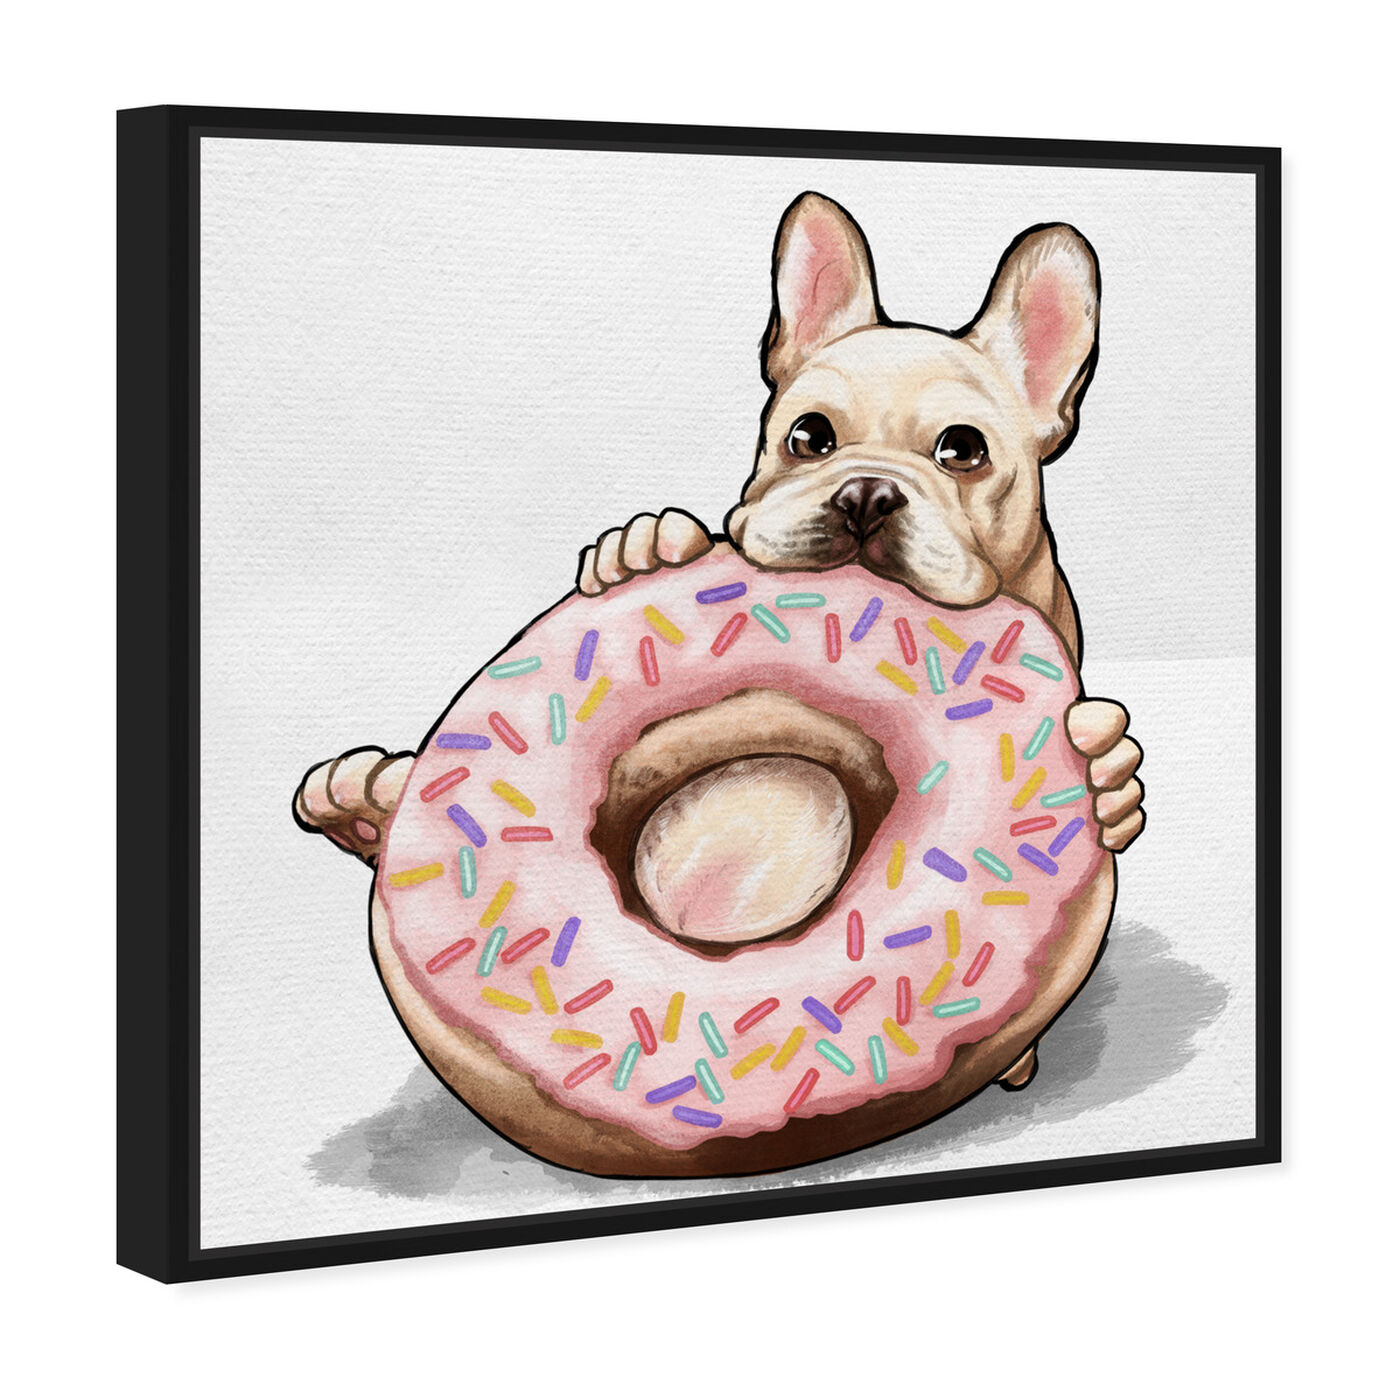 Angled view of Donut Frenchie featuring animals and dogs and puppies art.